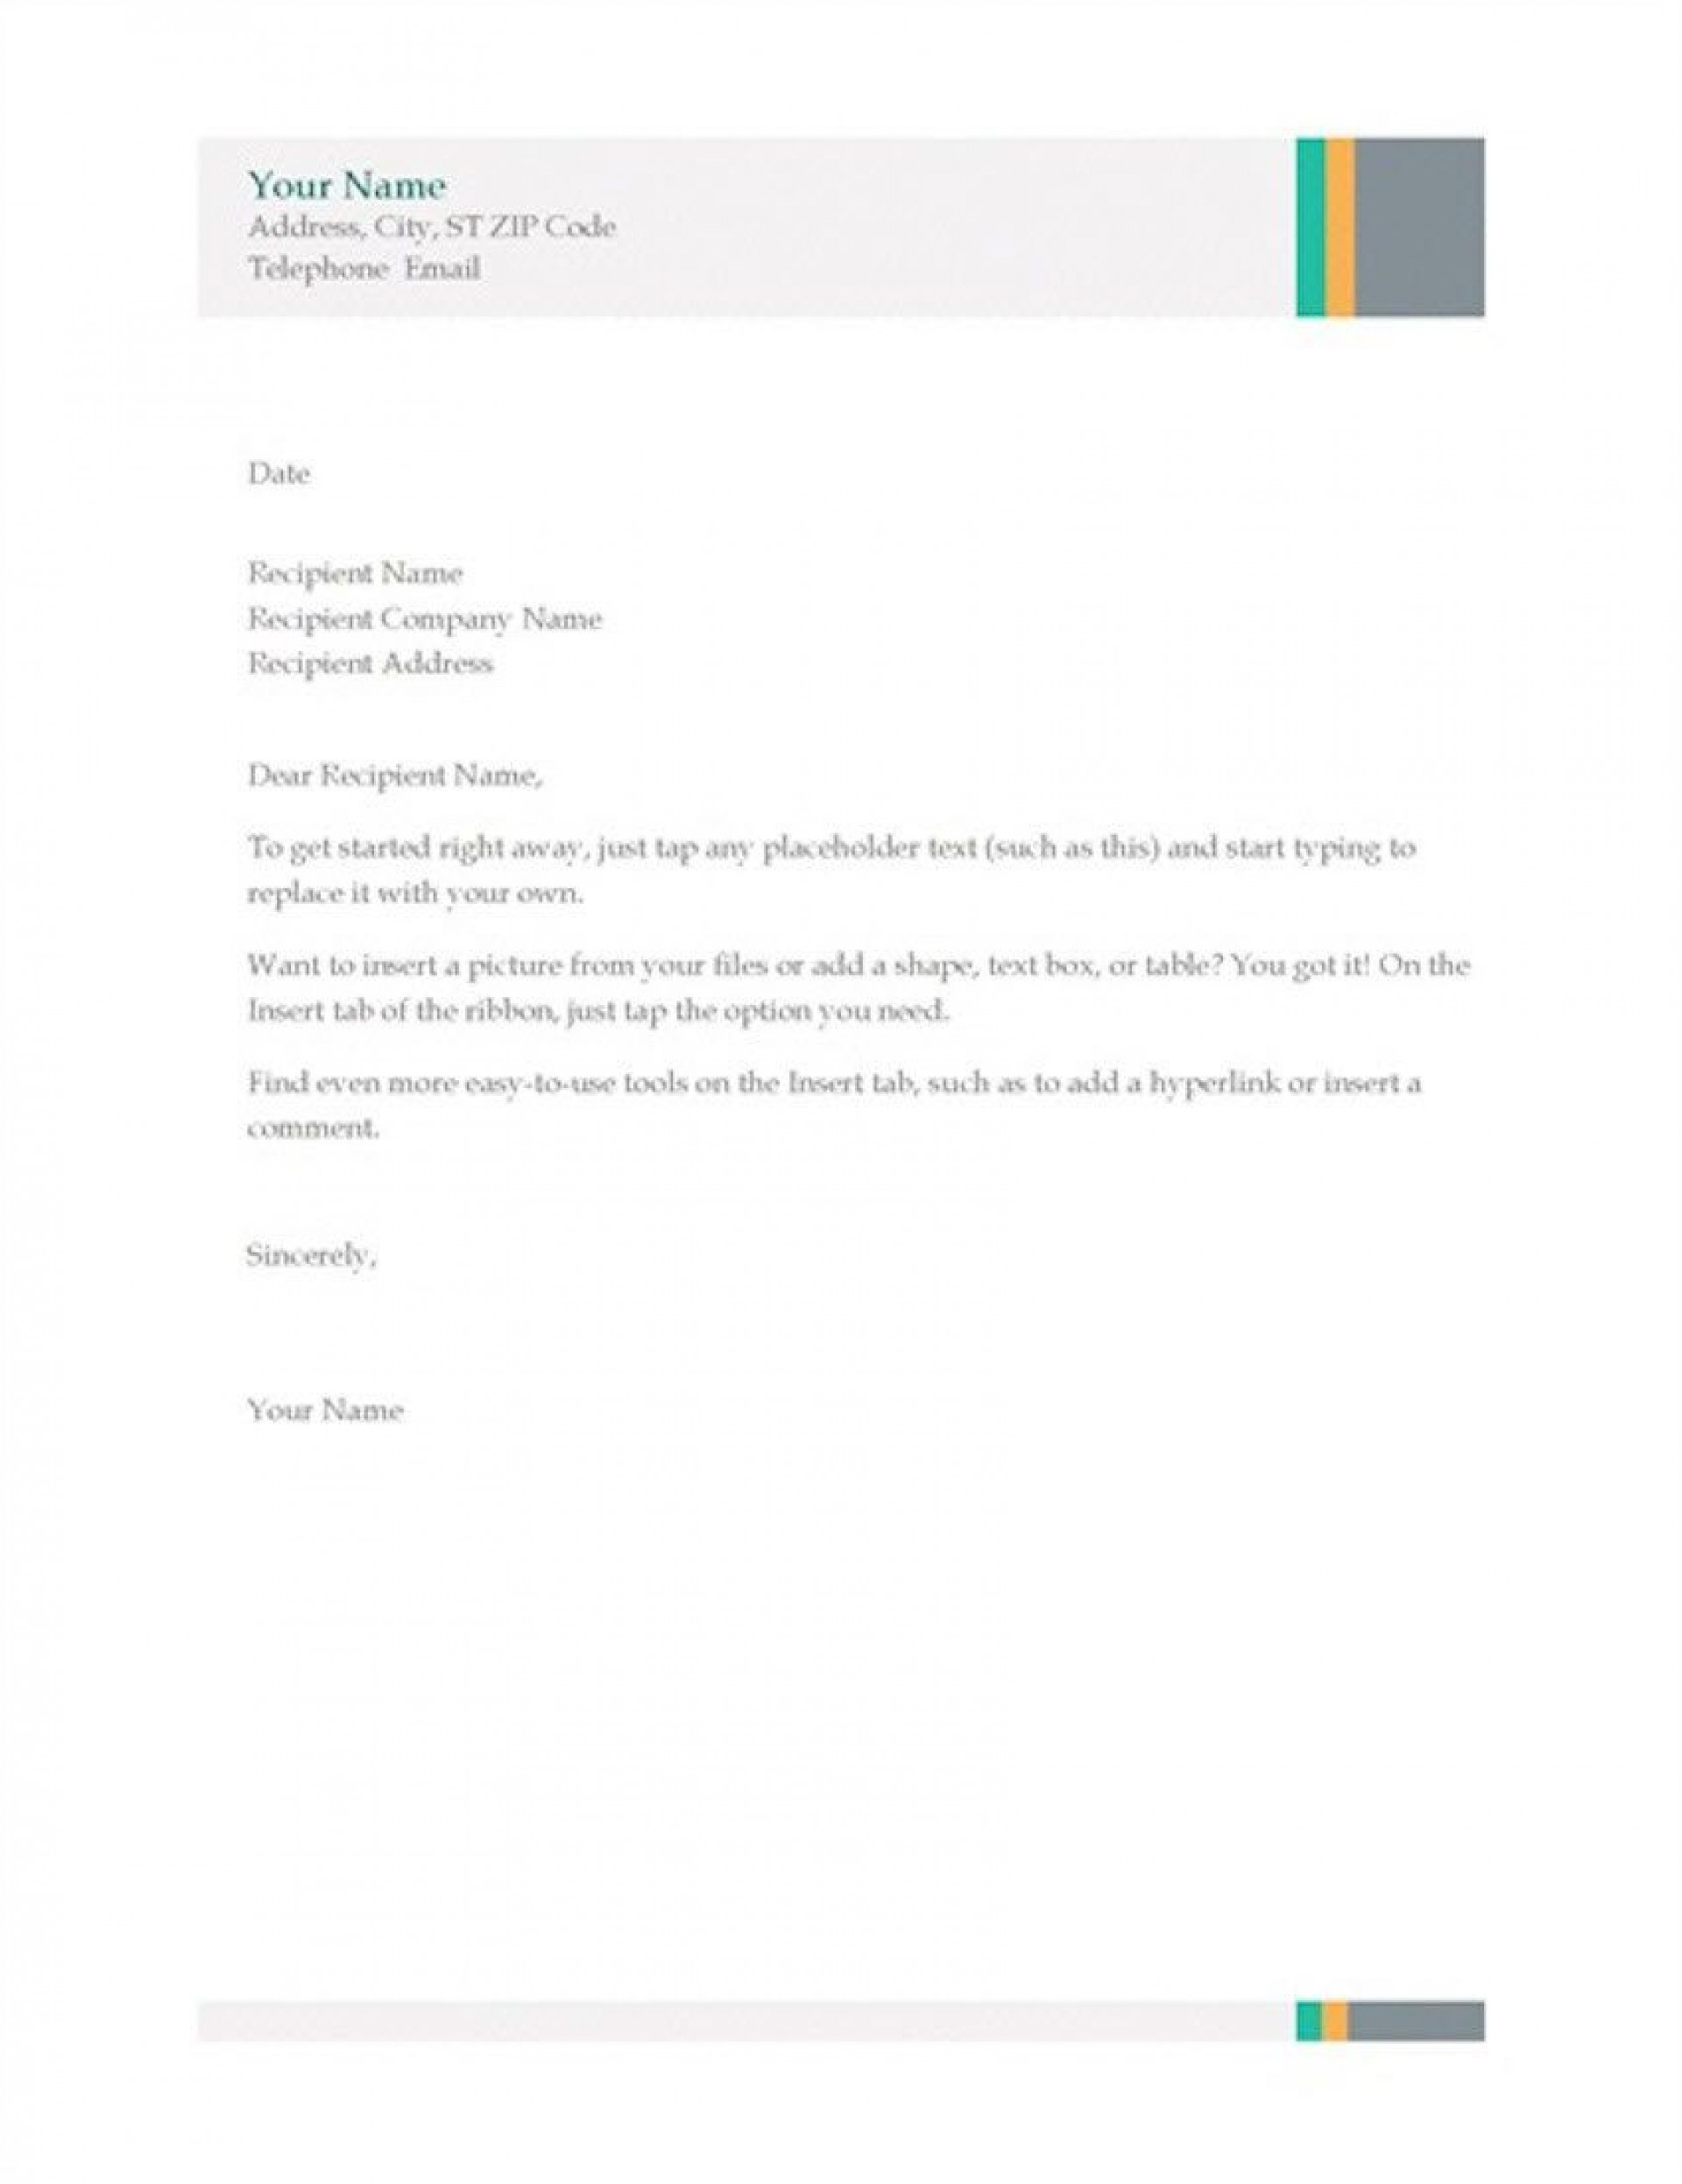 006 Archaicawful Letterhead Example Free Download High Definition  Advocate Format Hospital In Word Pdf1920